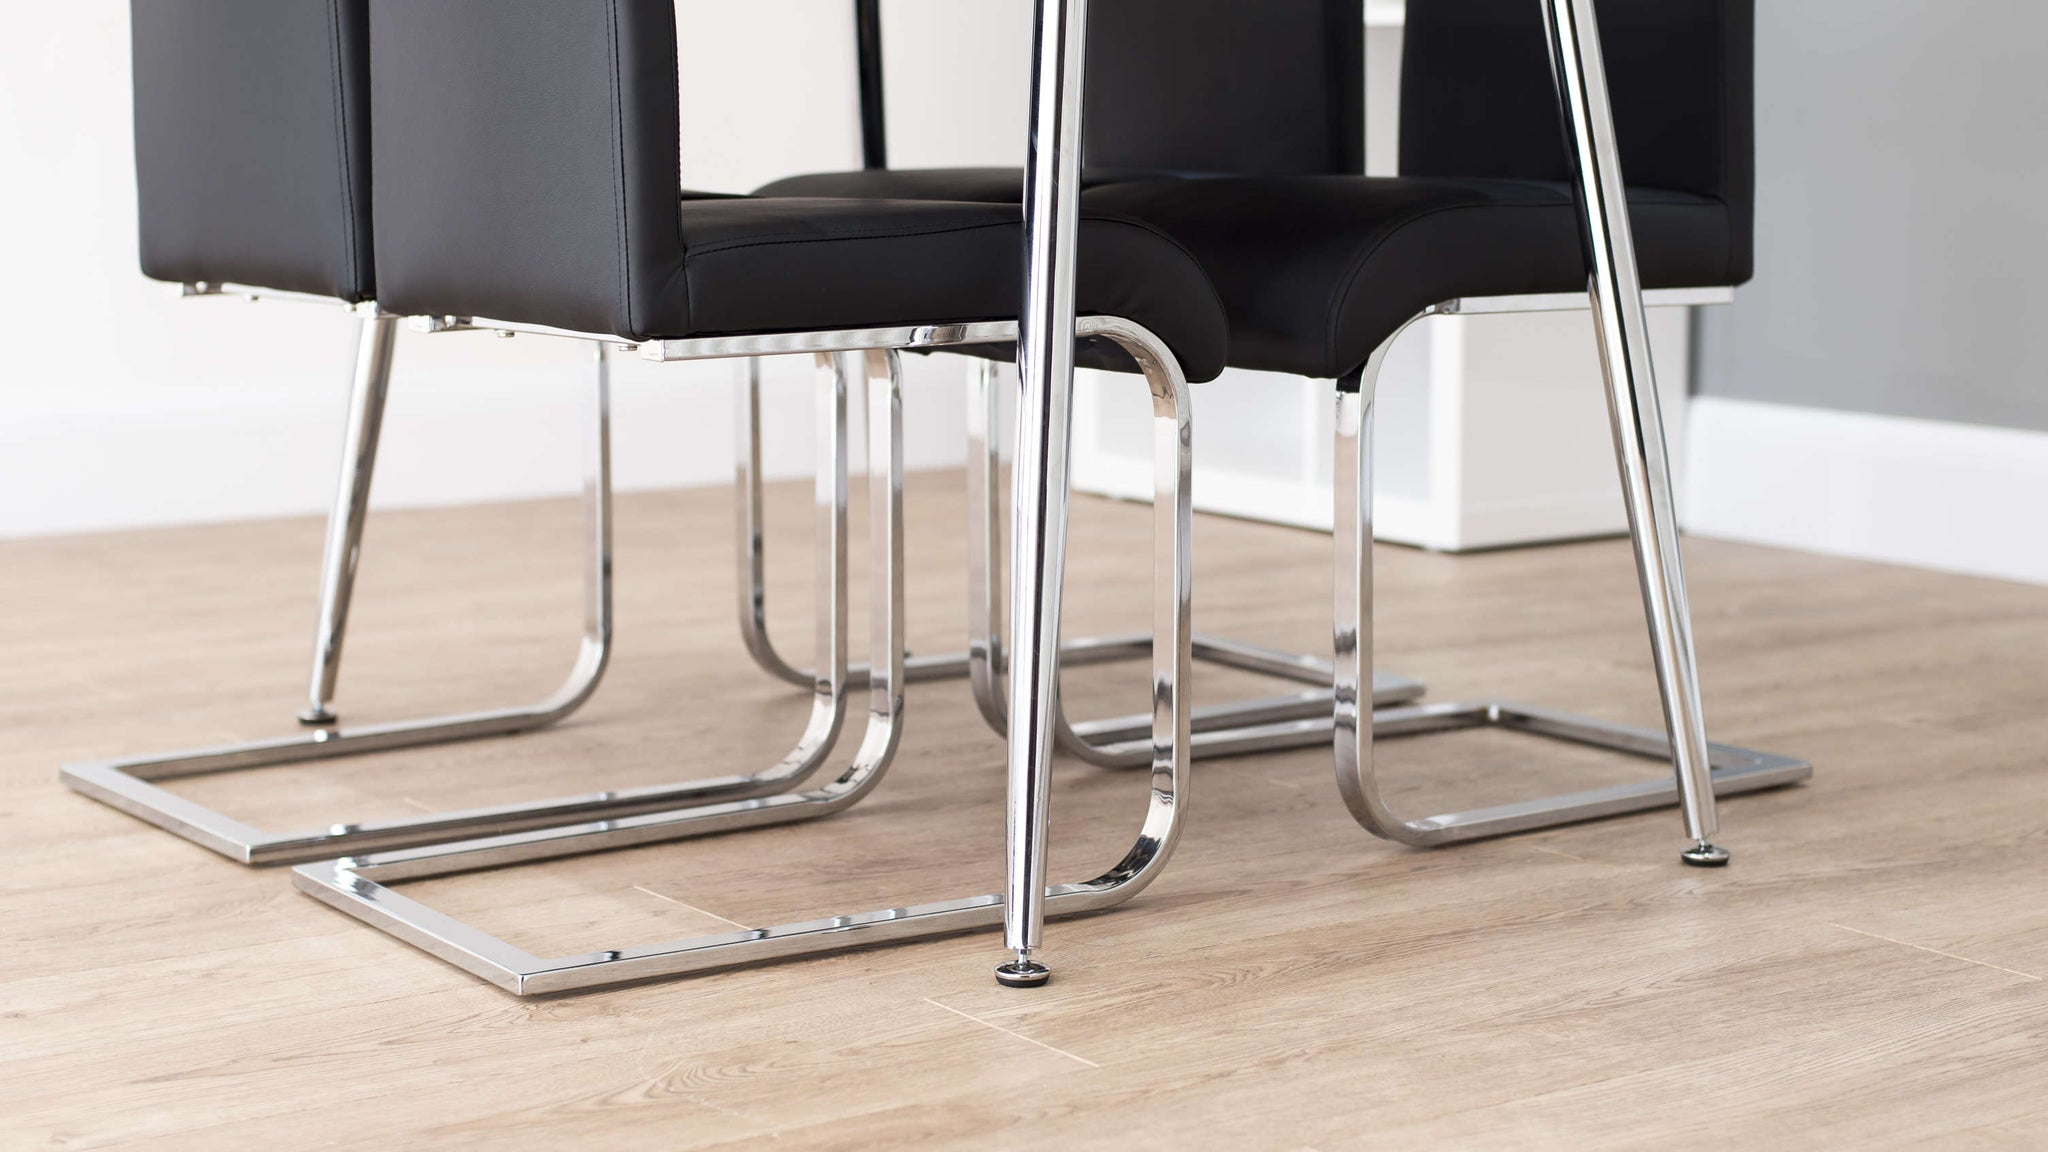 Chrome Legged Dining Table with Floor Protectors